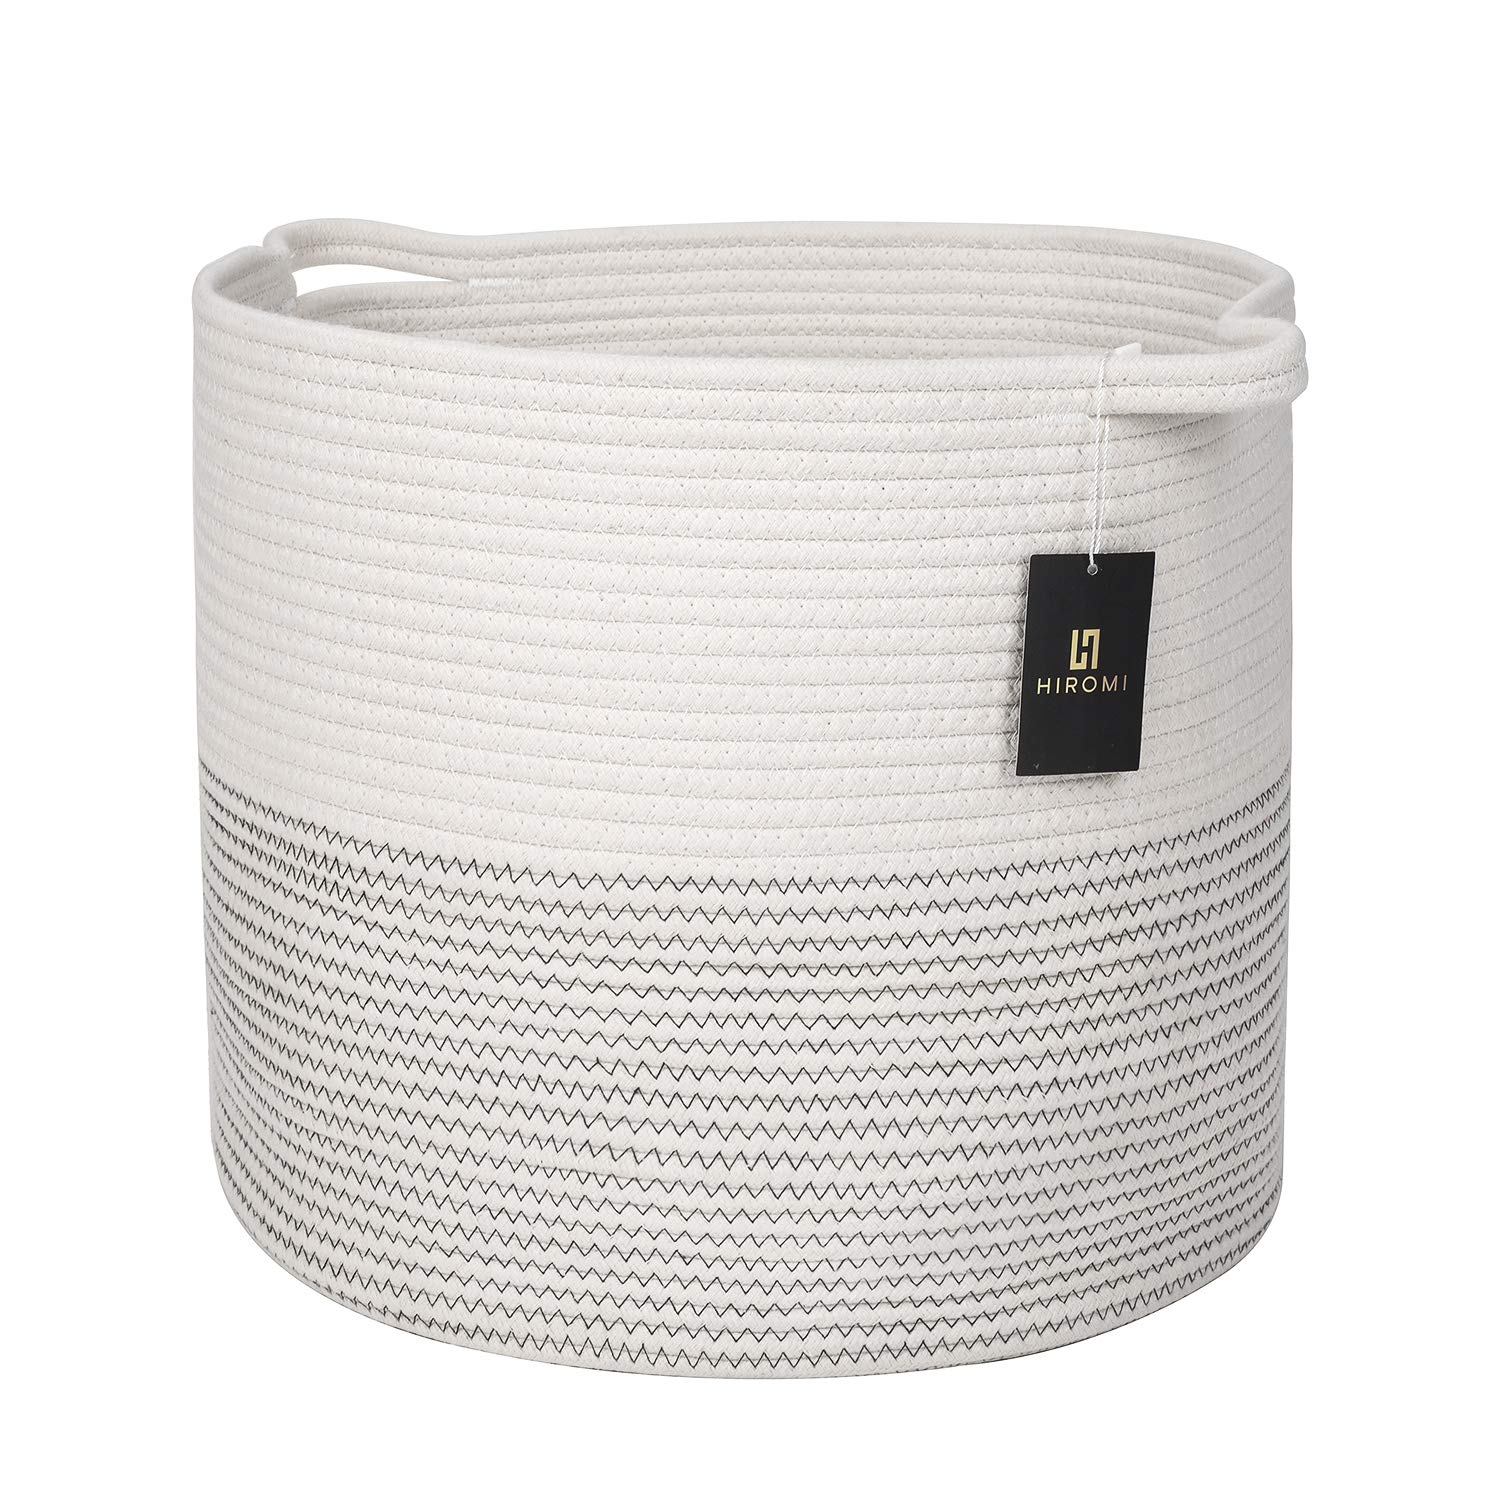 Hiromi Cotton Rope Basket – Decorative White Storage